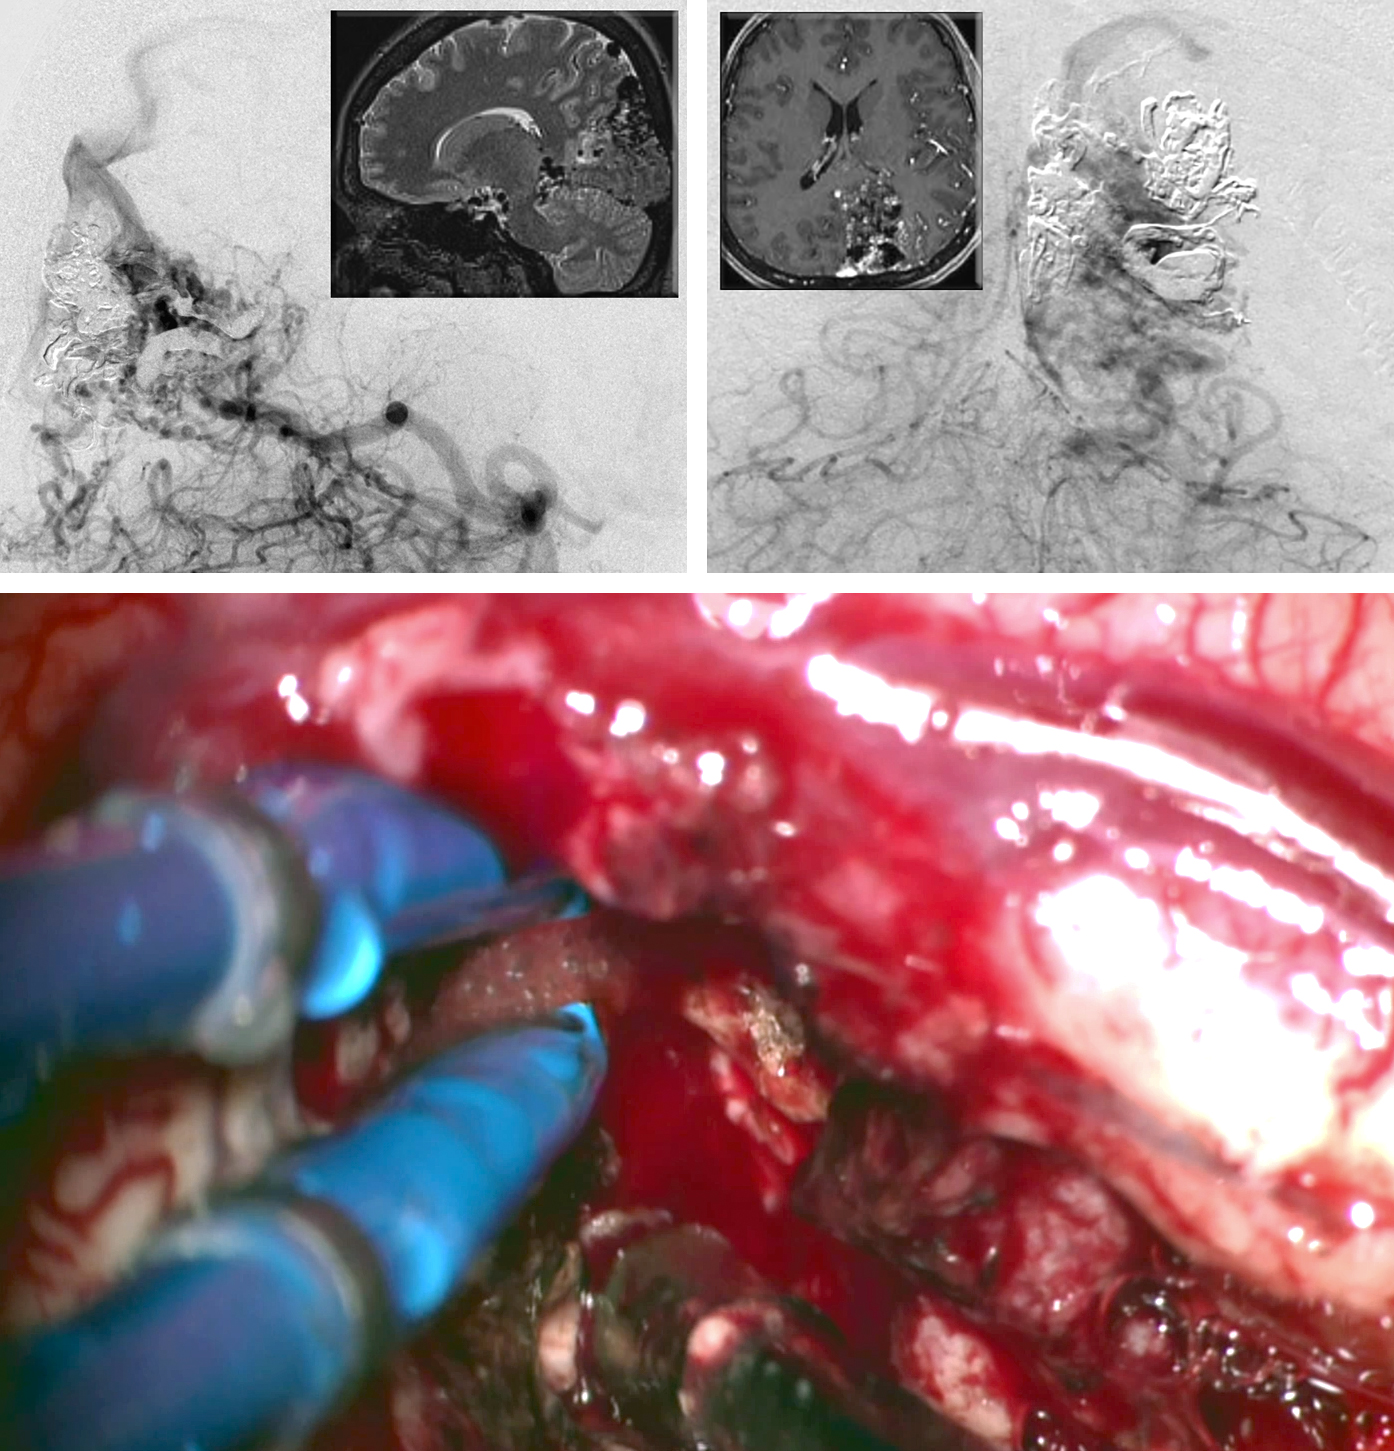 Figure 10: A paramedian parieto-occipital AVM is shown (upper images-lateral and anteroposterior vertebral angiograms). This lesion is primarily fed by the PCA. The preoperative overembolization of the larger feeding pedicles potentially led to the intraoperative findings of white matter feeder hypertrophy and excessive blood loss during disconnection of the white matter feeders (lower photo).